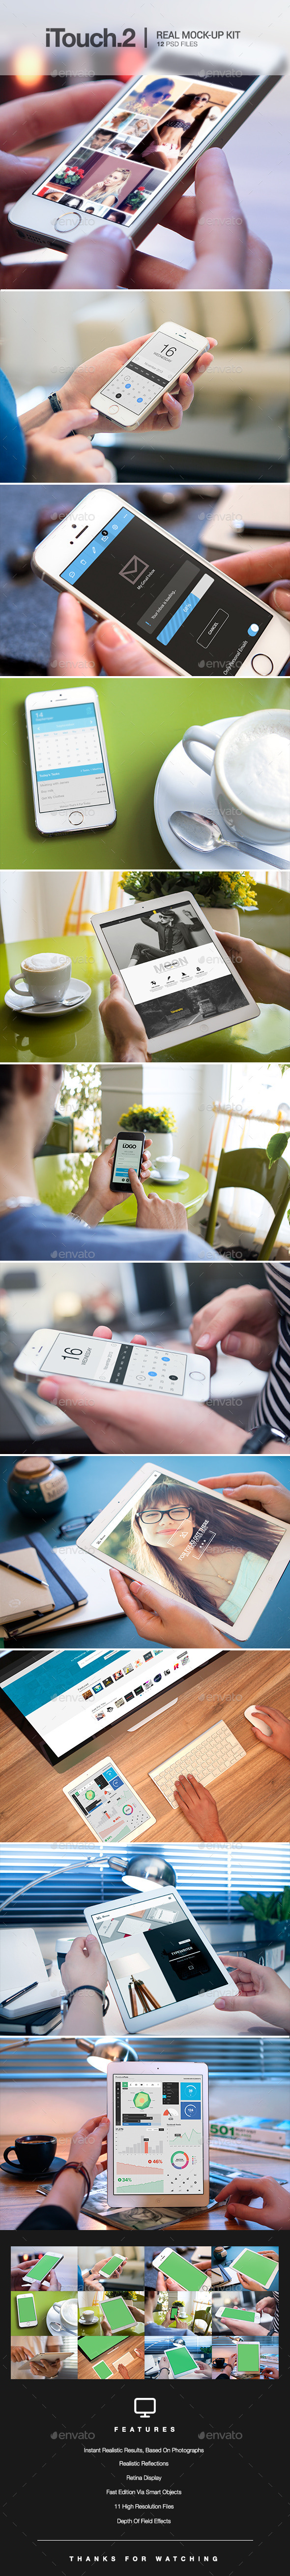 iTouch 2 - 12 Photorealistic MockUp - Mobile Displays